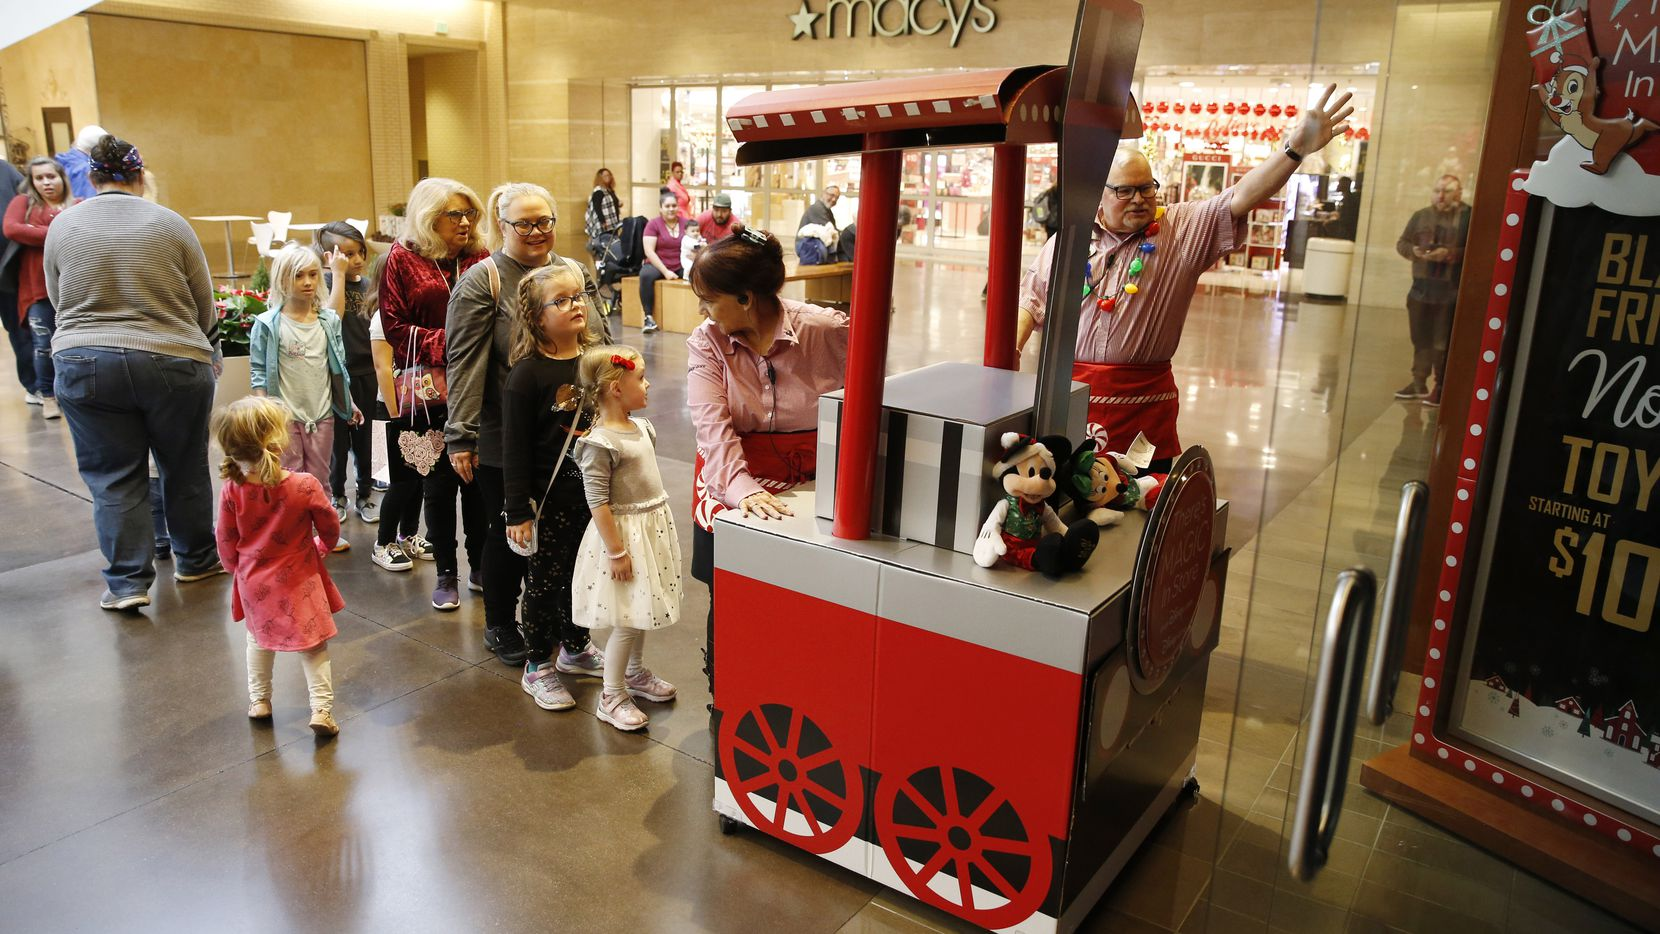 Disney Store employee Gary Prophet holds the door as Sandra Biggs leads the parade into the store signifying the opening of the store at NorthPark Center in Dallas on Wednesday, November 27, 2019.